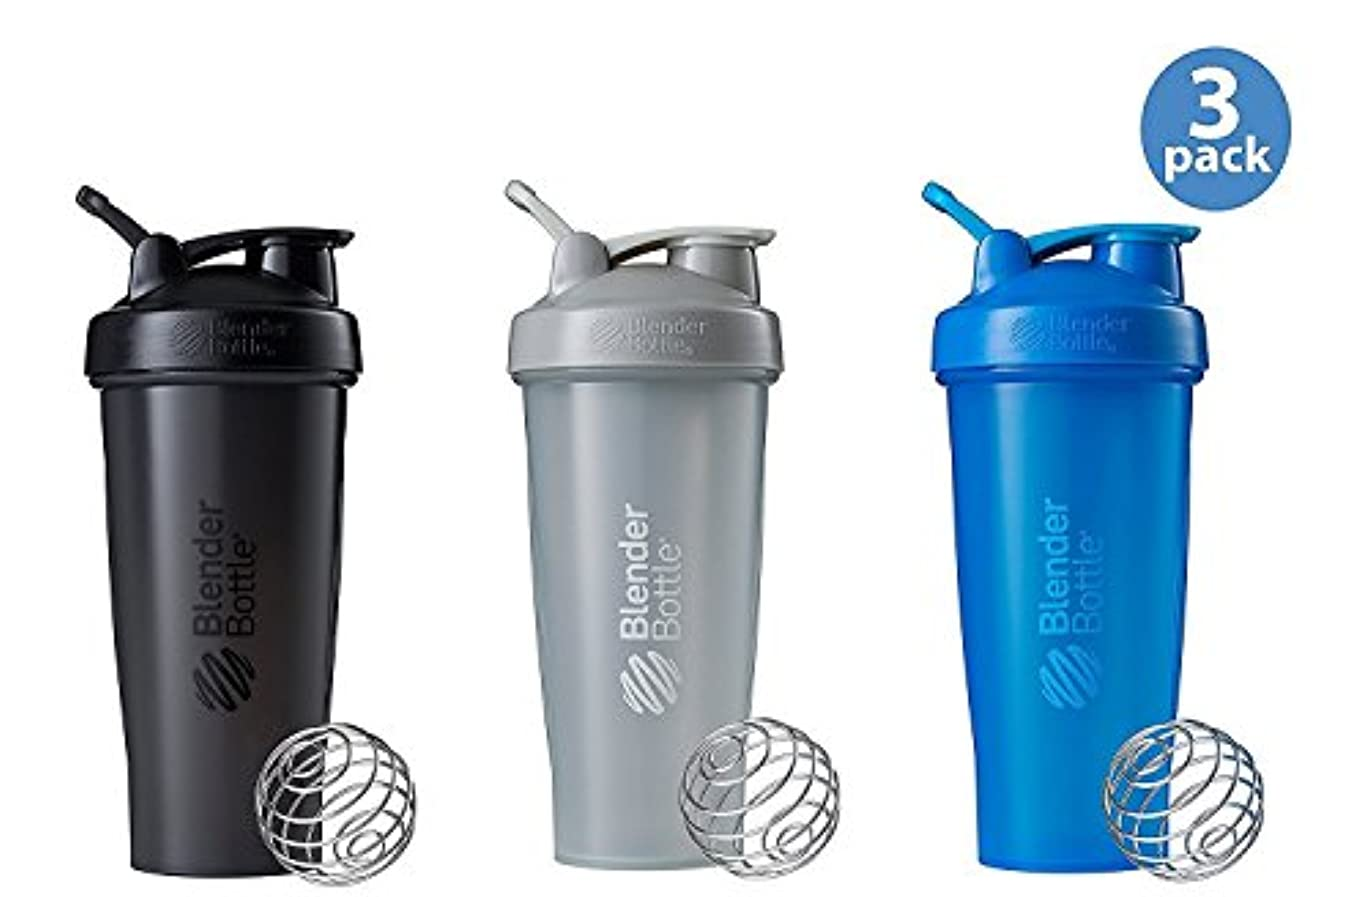 検索エンジンマーケティング聴覚メーターBlenderBottle Classic Loop Top Shaker Bottle 3-Pack, 28 oz, Colors may vary 141[並行輸入]